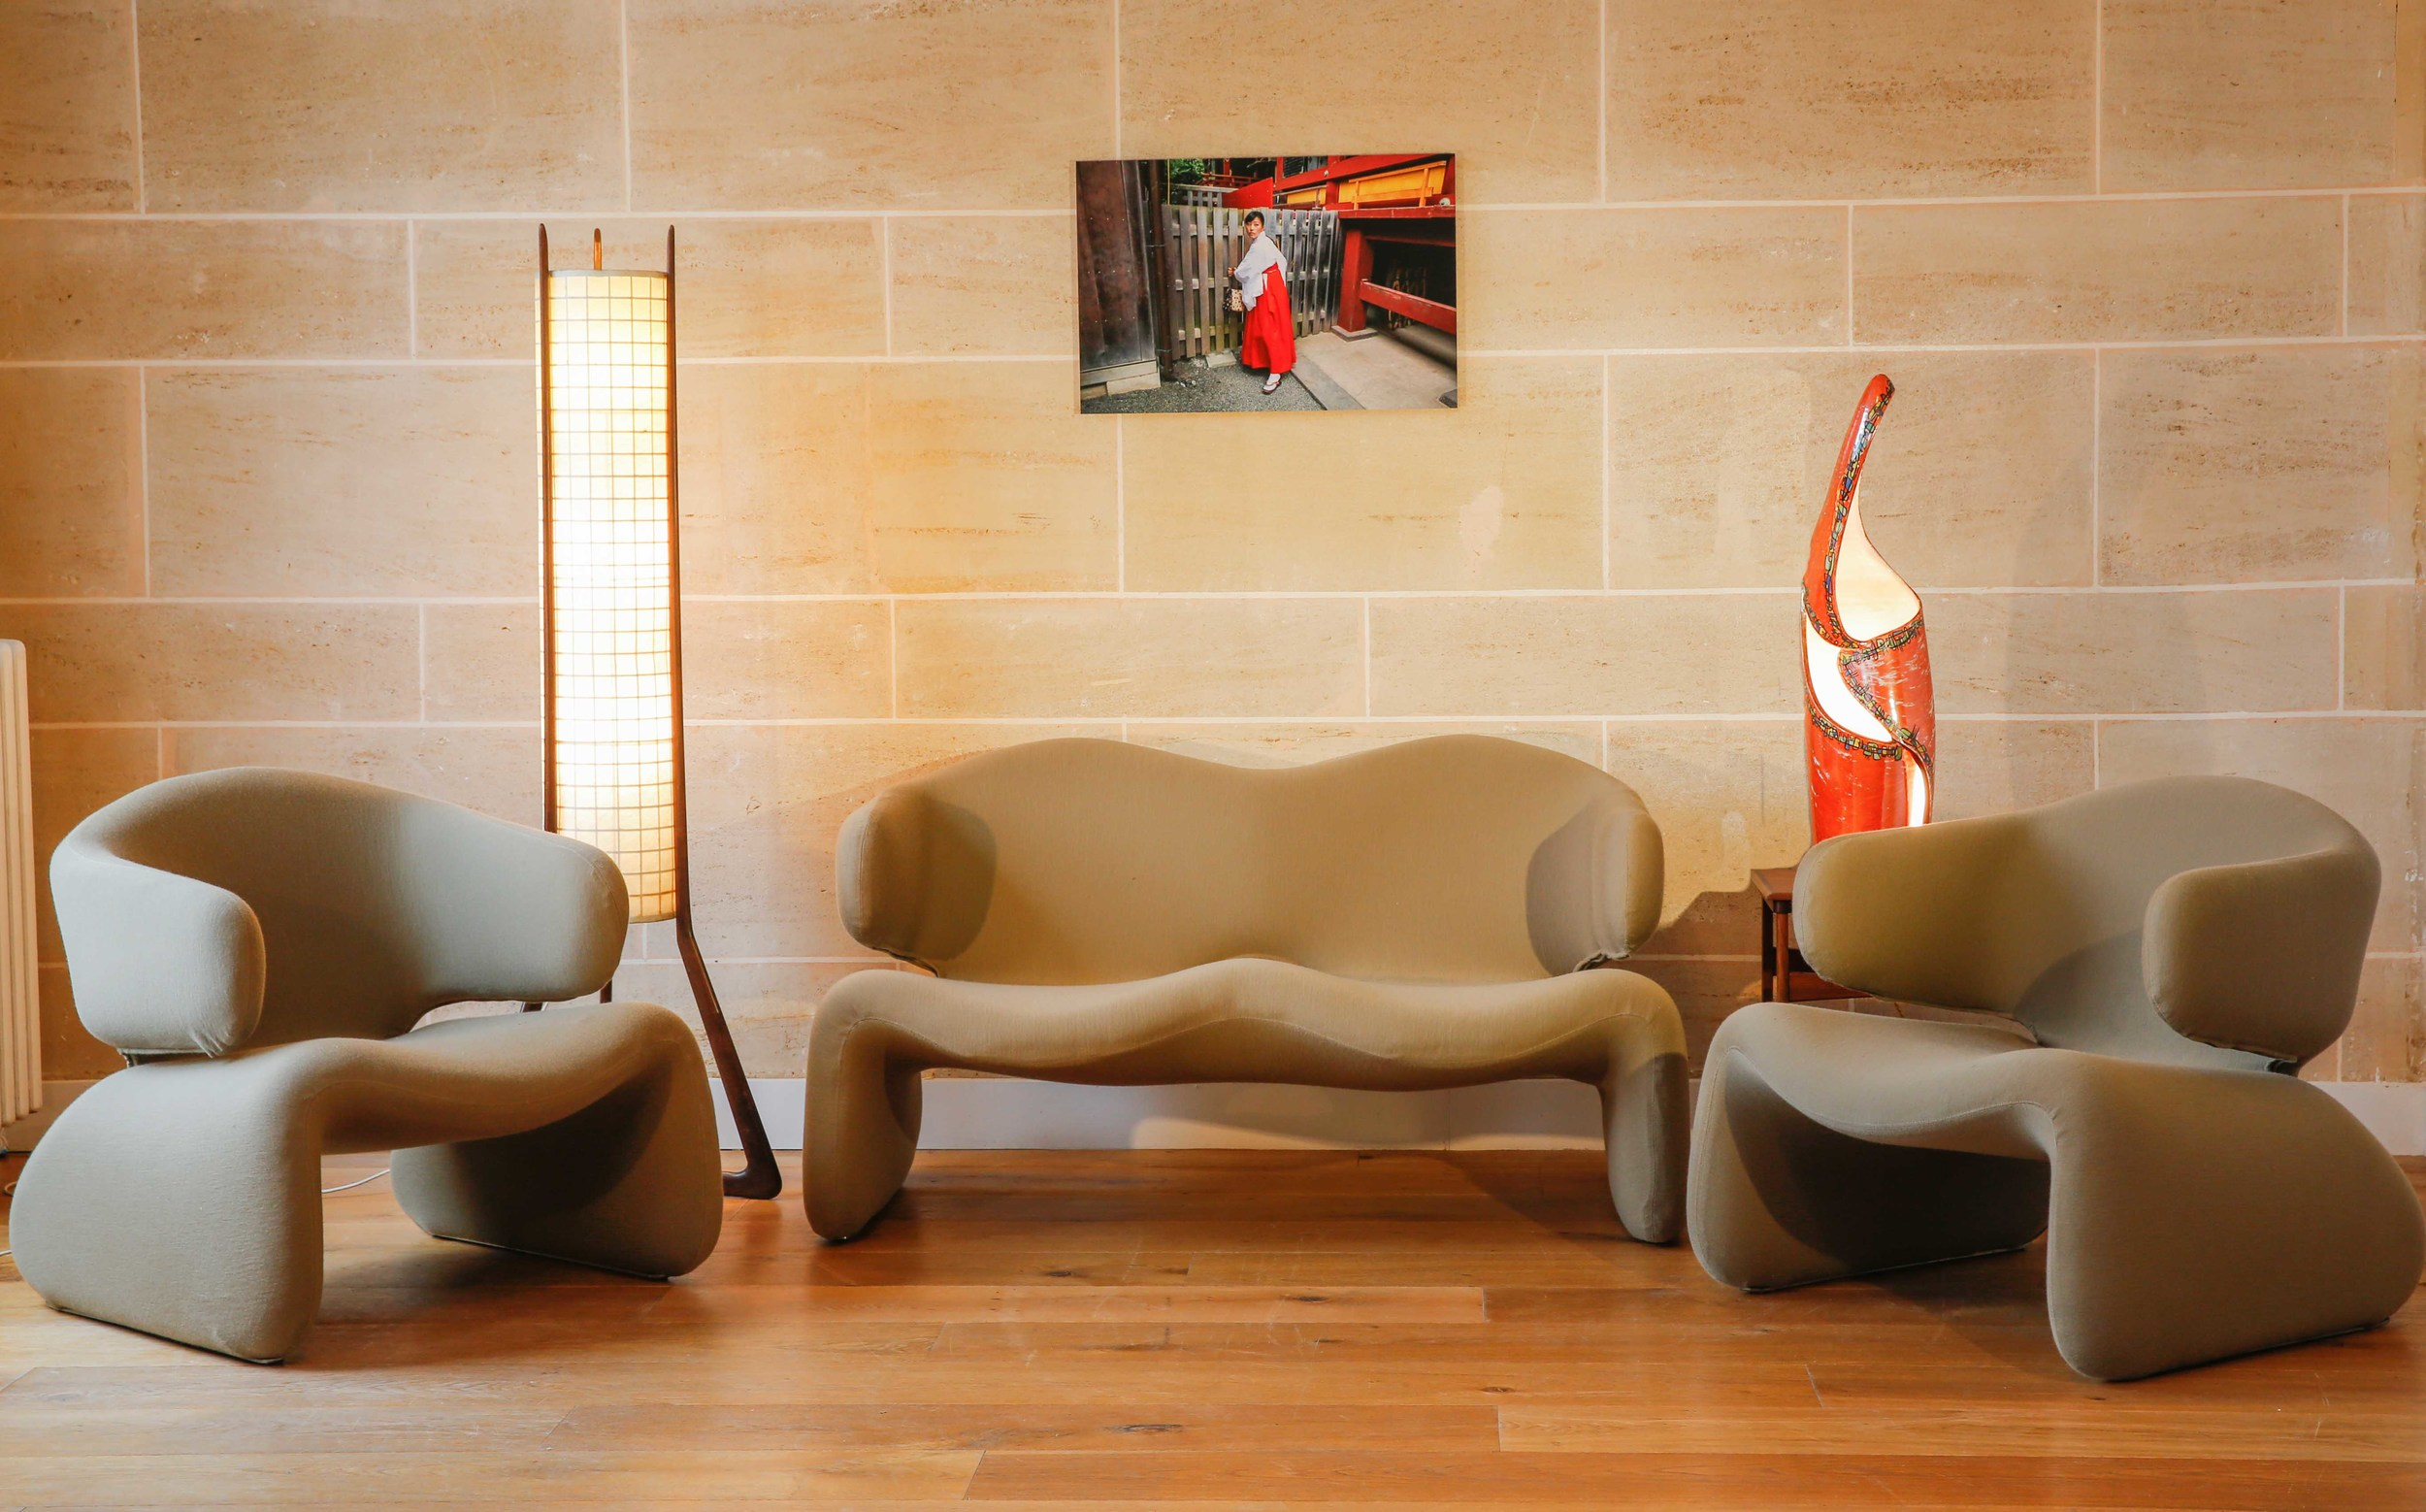 A Djinn two seat sofa and two armchairs. Design by Olivier MOURGUE.